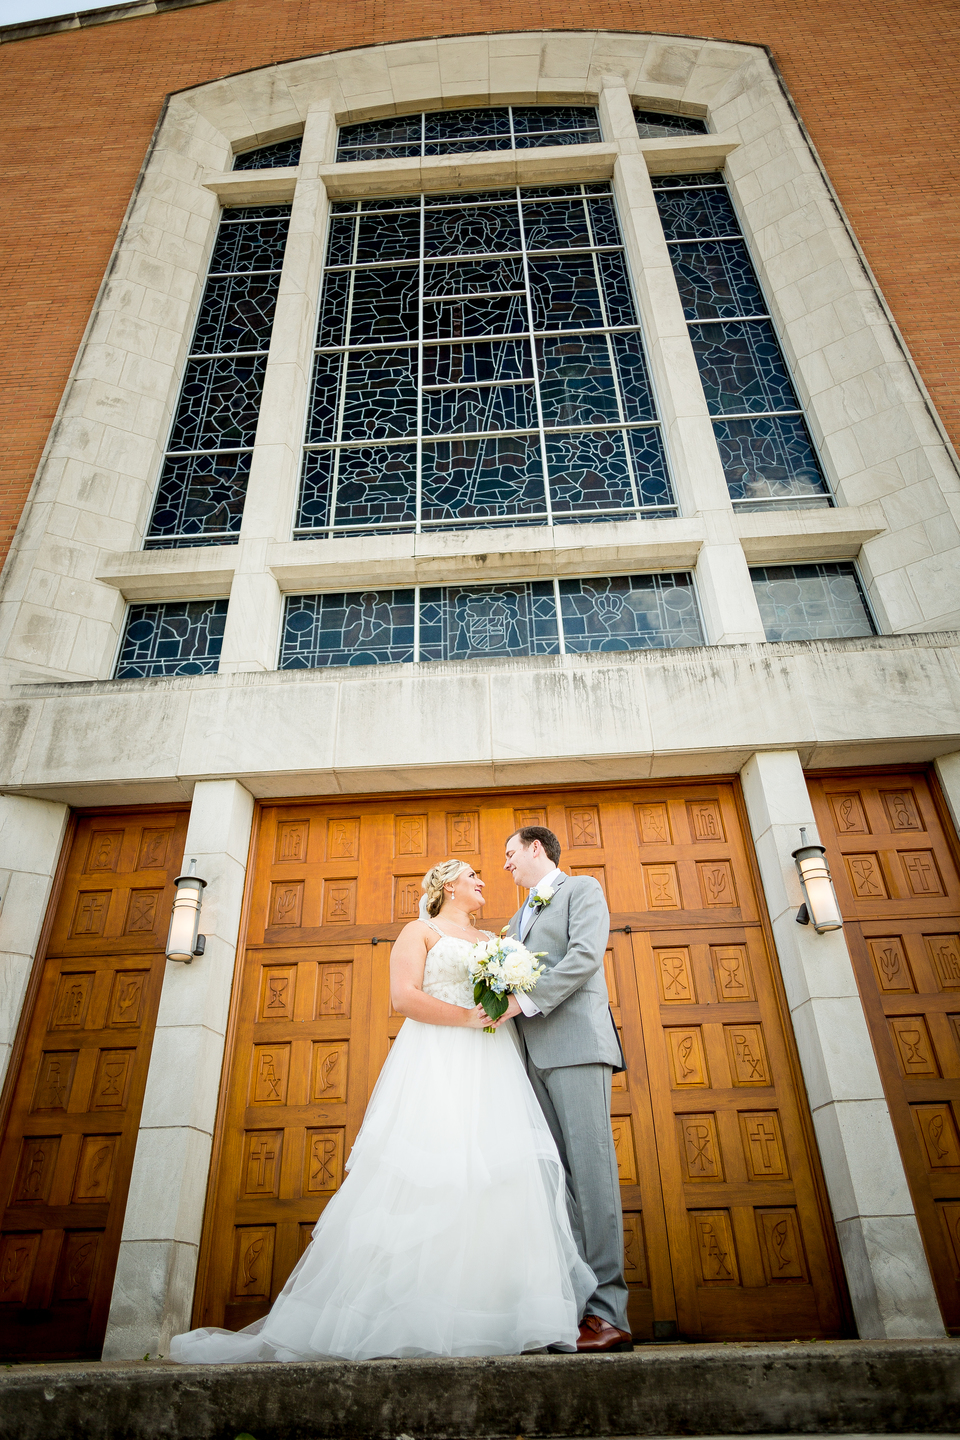 Creative wedding photo ideas: Charming & Fun Hutton Hotel Nashville Wedding